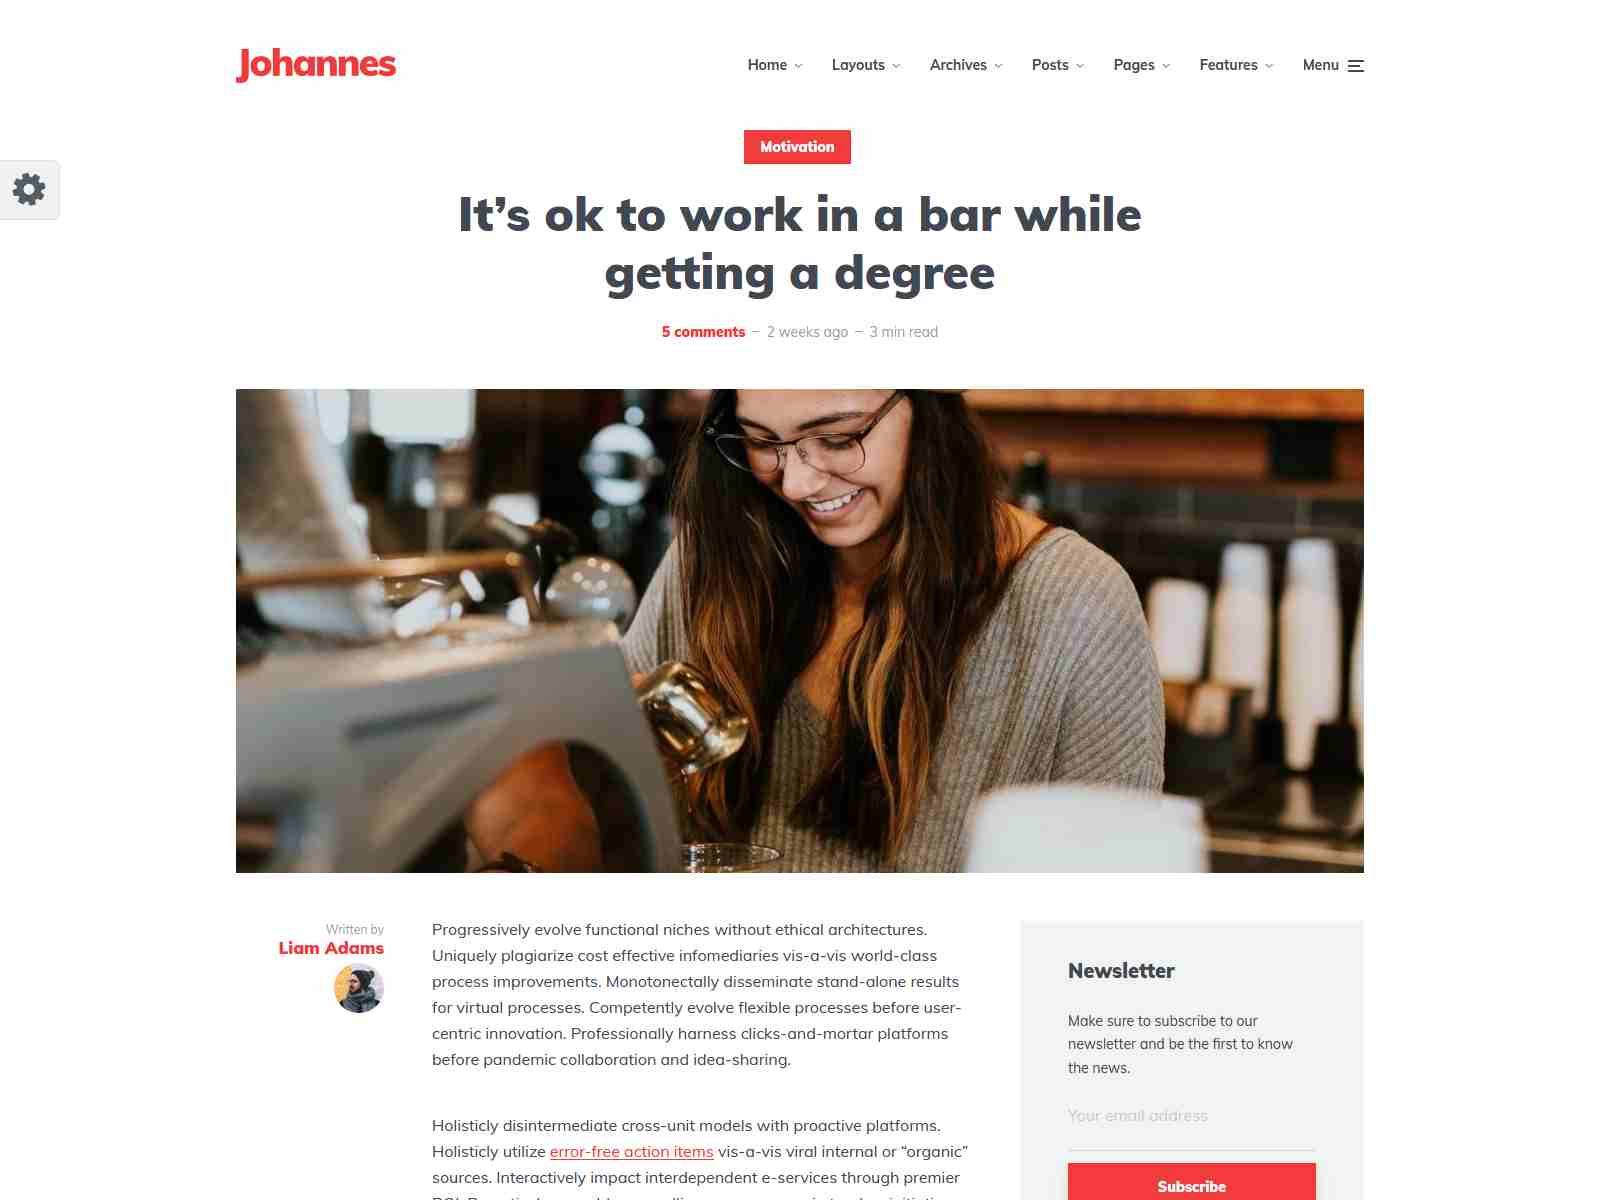 Johannes - Personal Blog Theme for WordPress